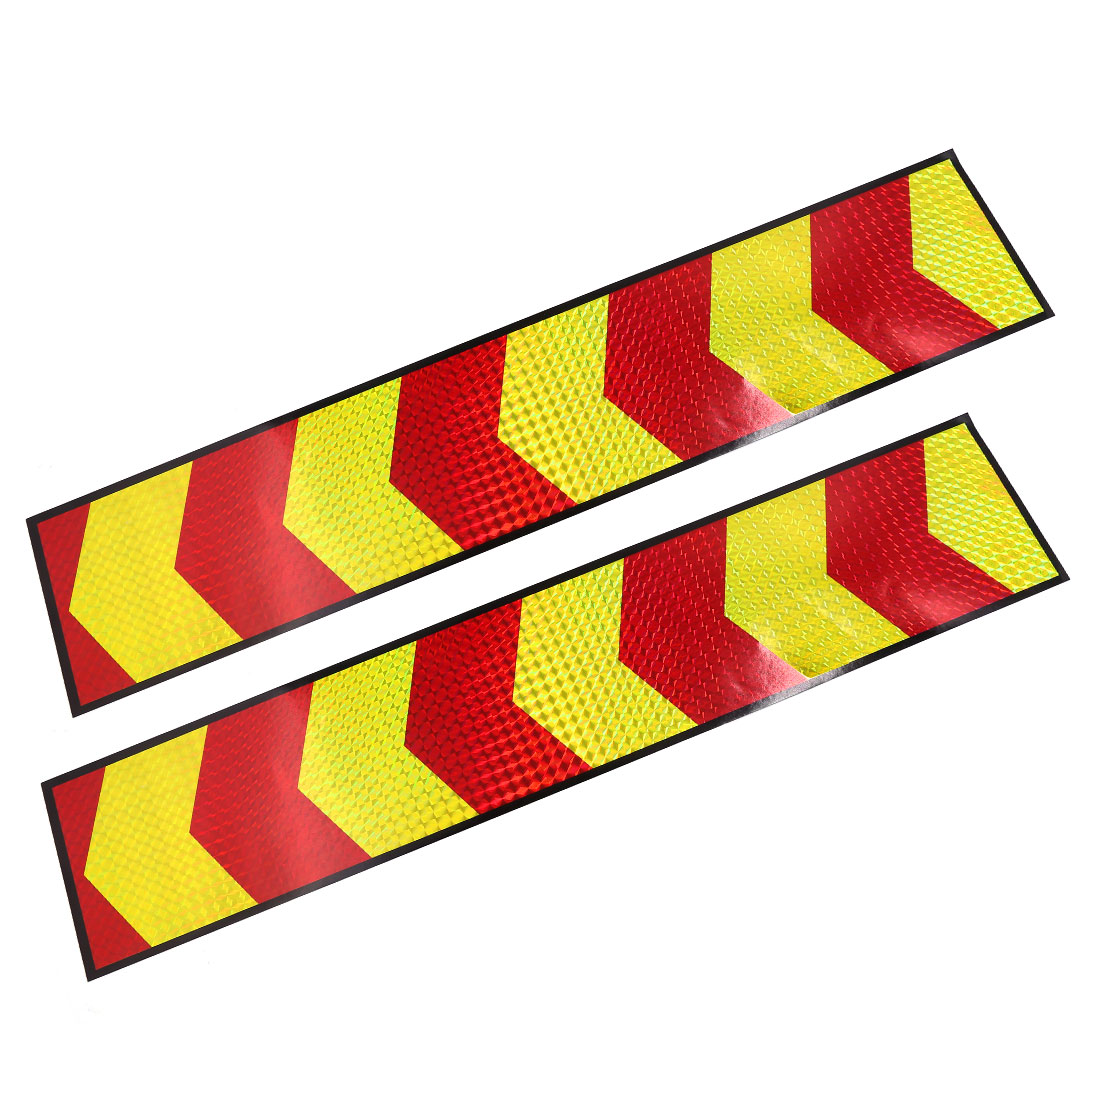 49cmx10cm Yellow Red Arrows Print Style Reflective Sticker Strip Decals for Car Auto